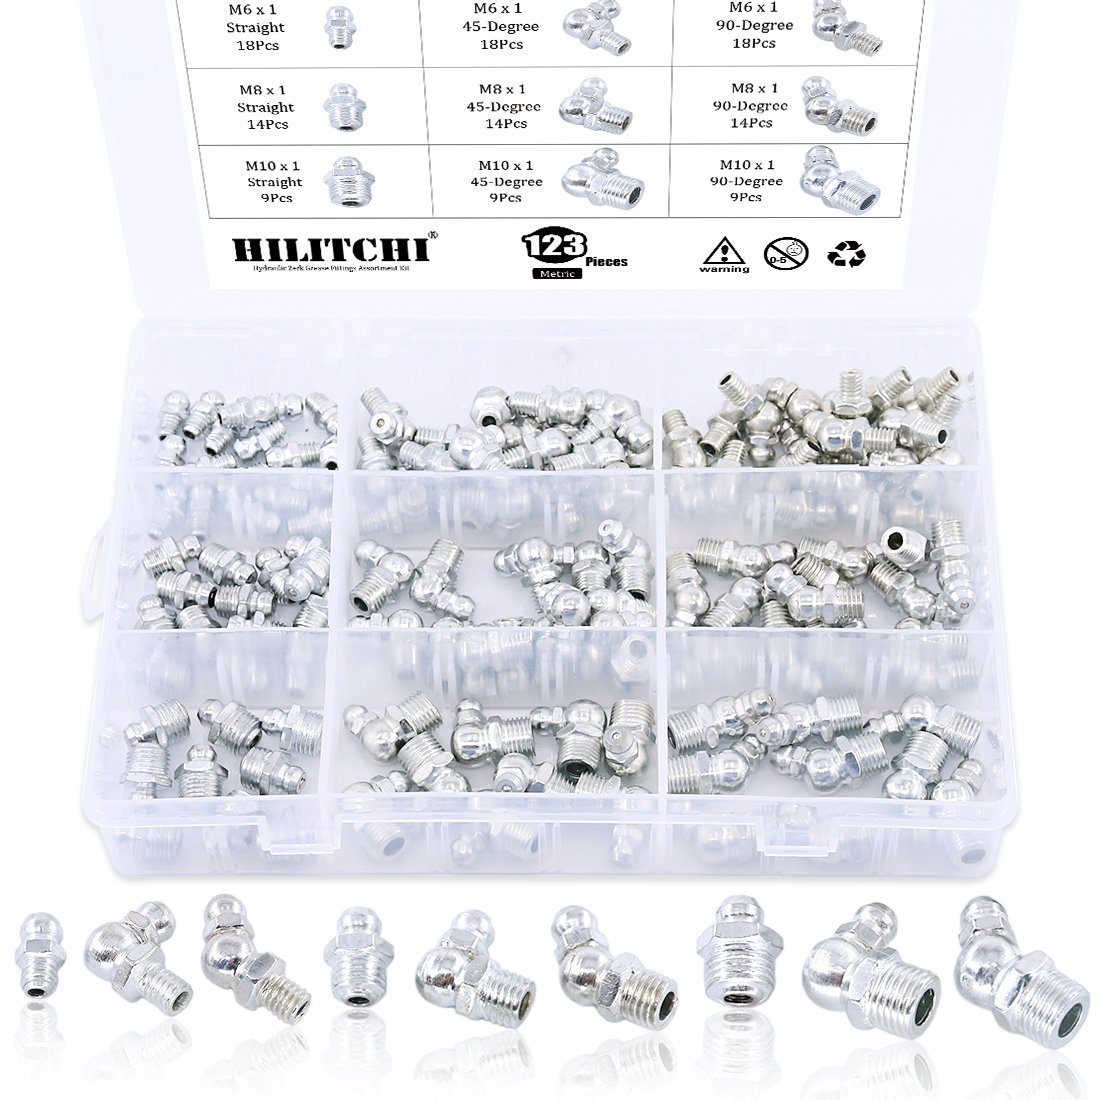 Hilitchi 123Pcs Metric Hydraulic Zerk Grease Fittings Assortment Kit (Metric)